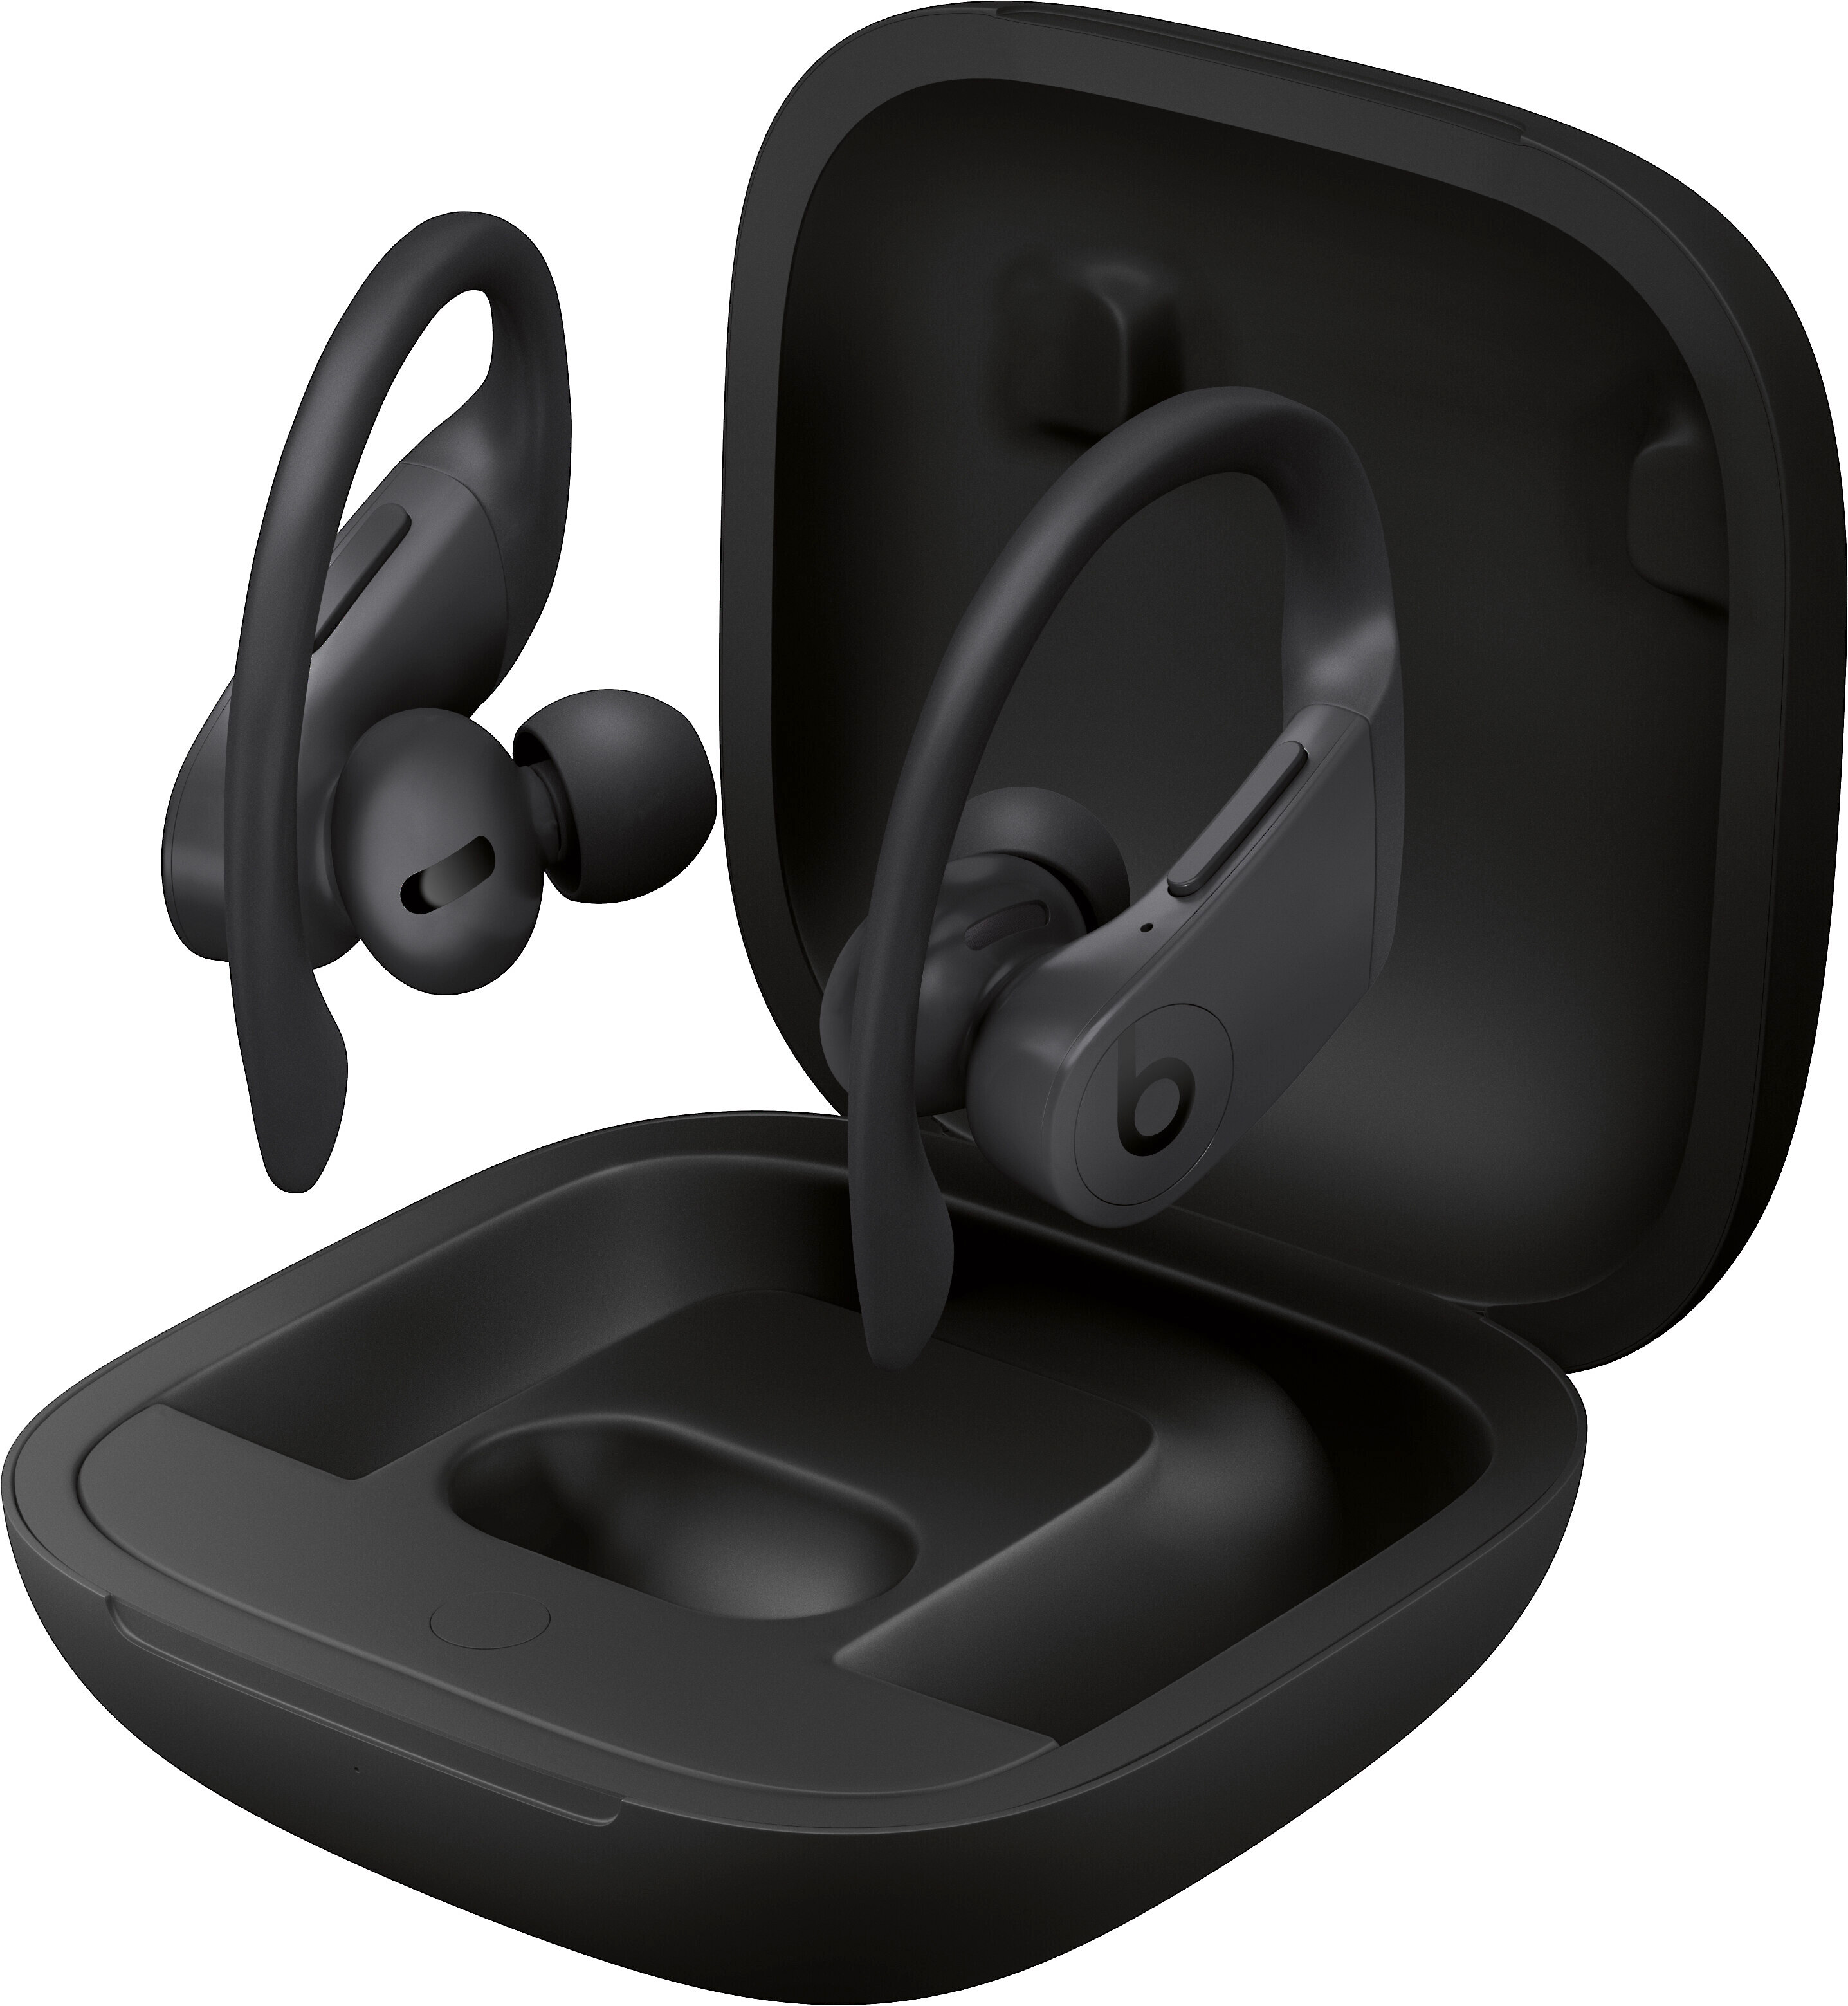 Customer Reviews Beats By Dr Dre Powerbeats Pro Black Totally Wireless Sports Earbuds With Apple H1 Chip At Crutchfield